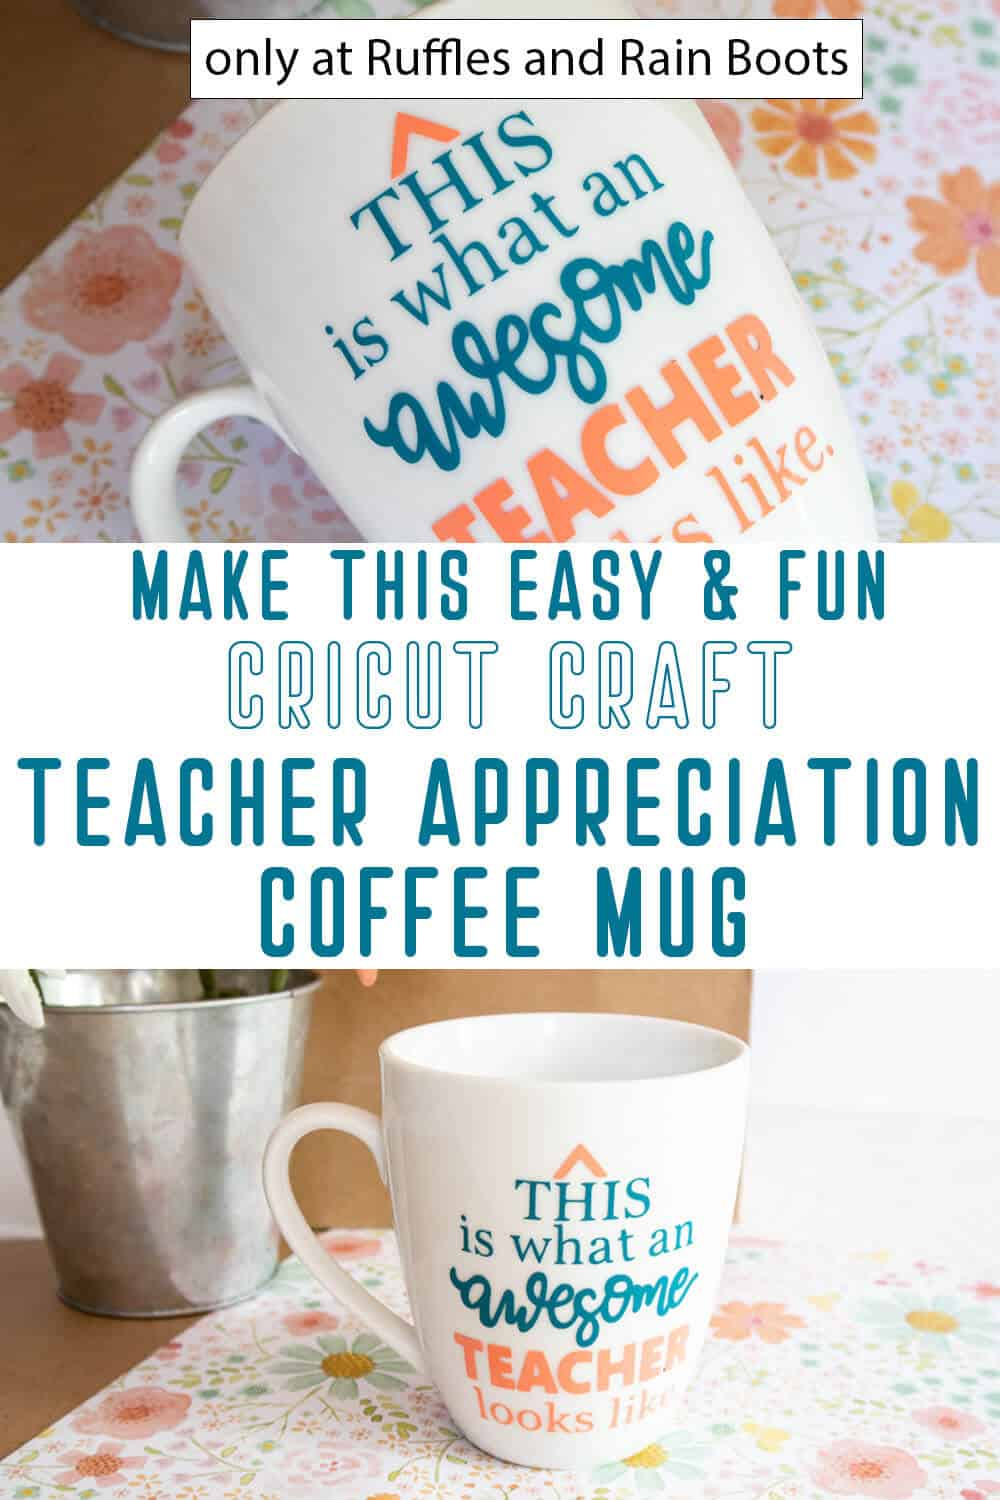 photo collage of teacher appreciation mug cricut craft with text which reads make this easy & fun cricut craft teacher appreciation coffee mug